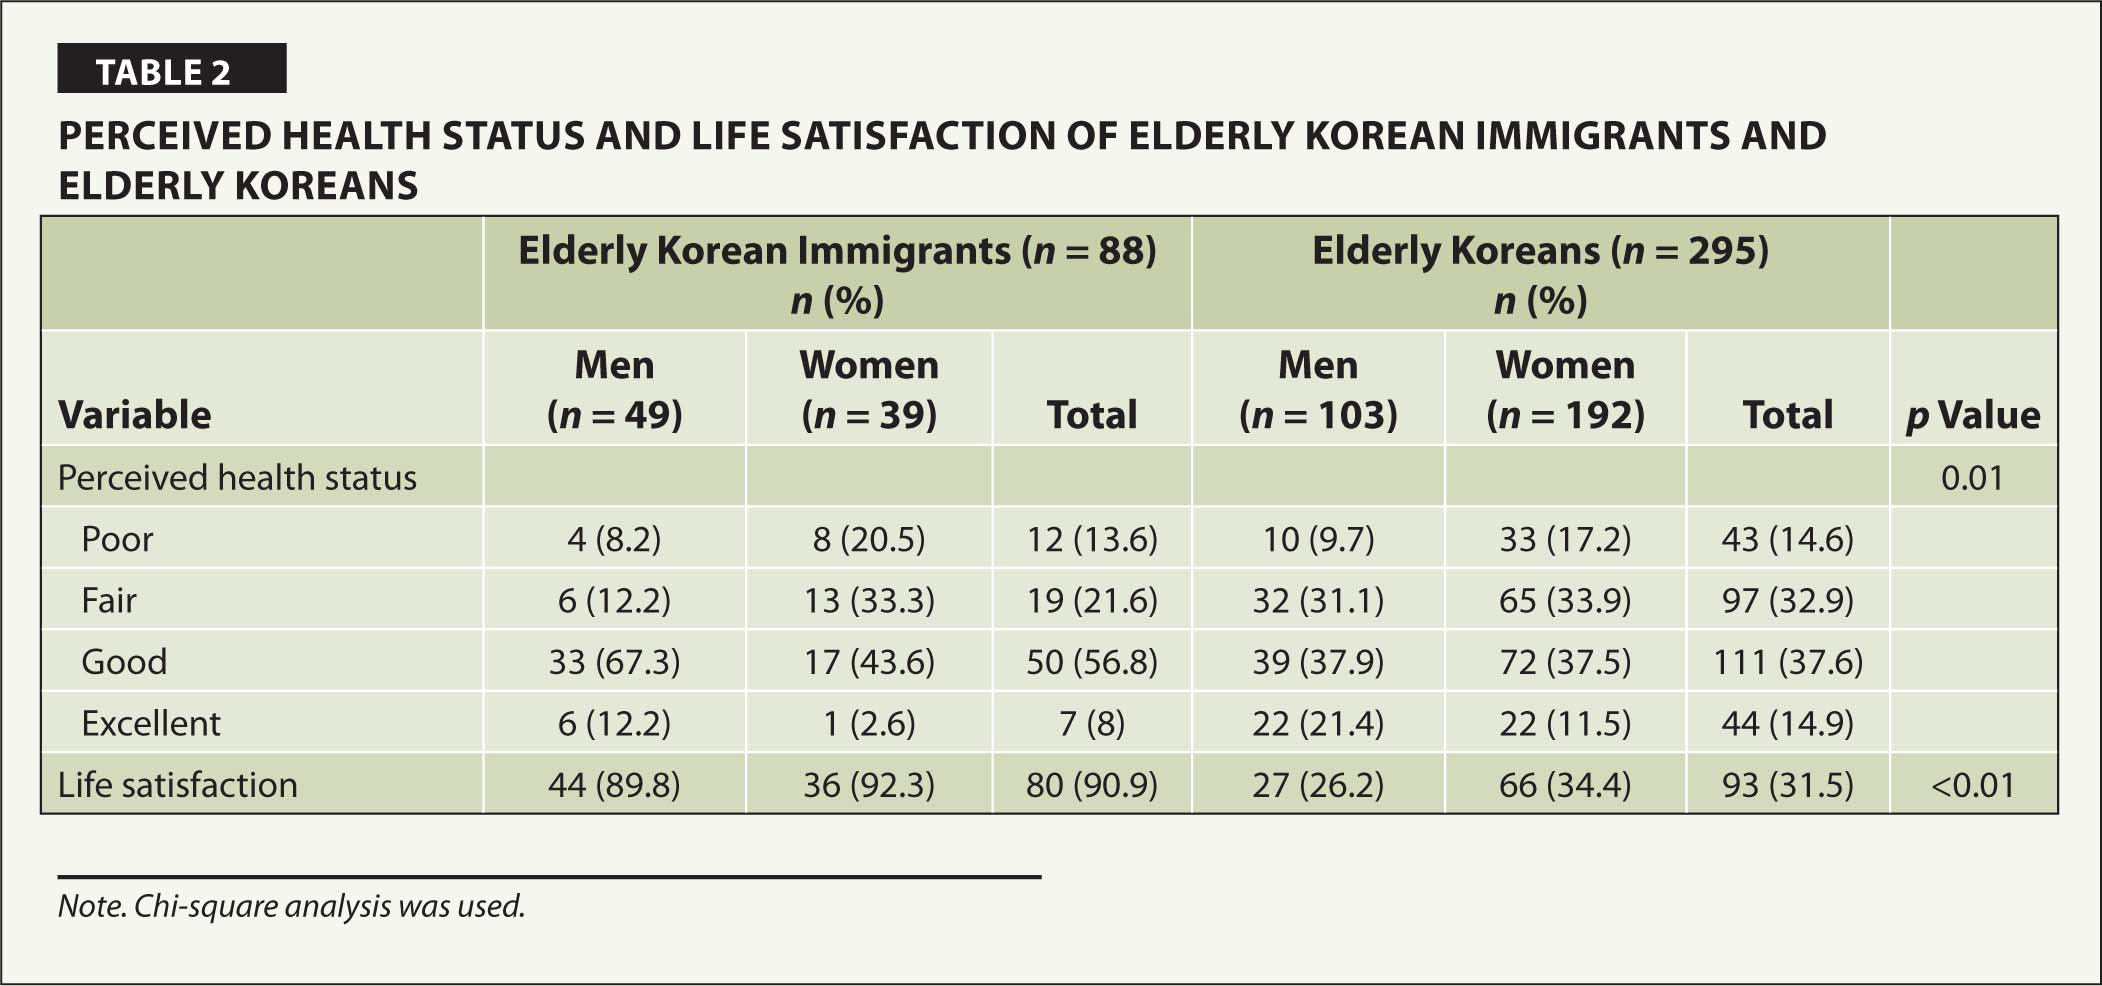 Perceived Health Status and Life Satisfaction of Elderly Korean Immigrants and Elderly Koreans